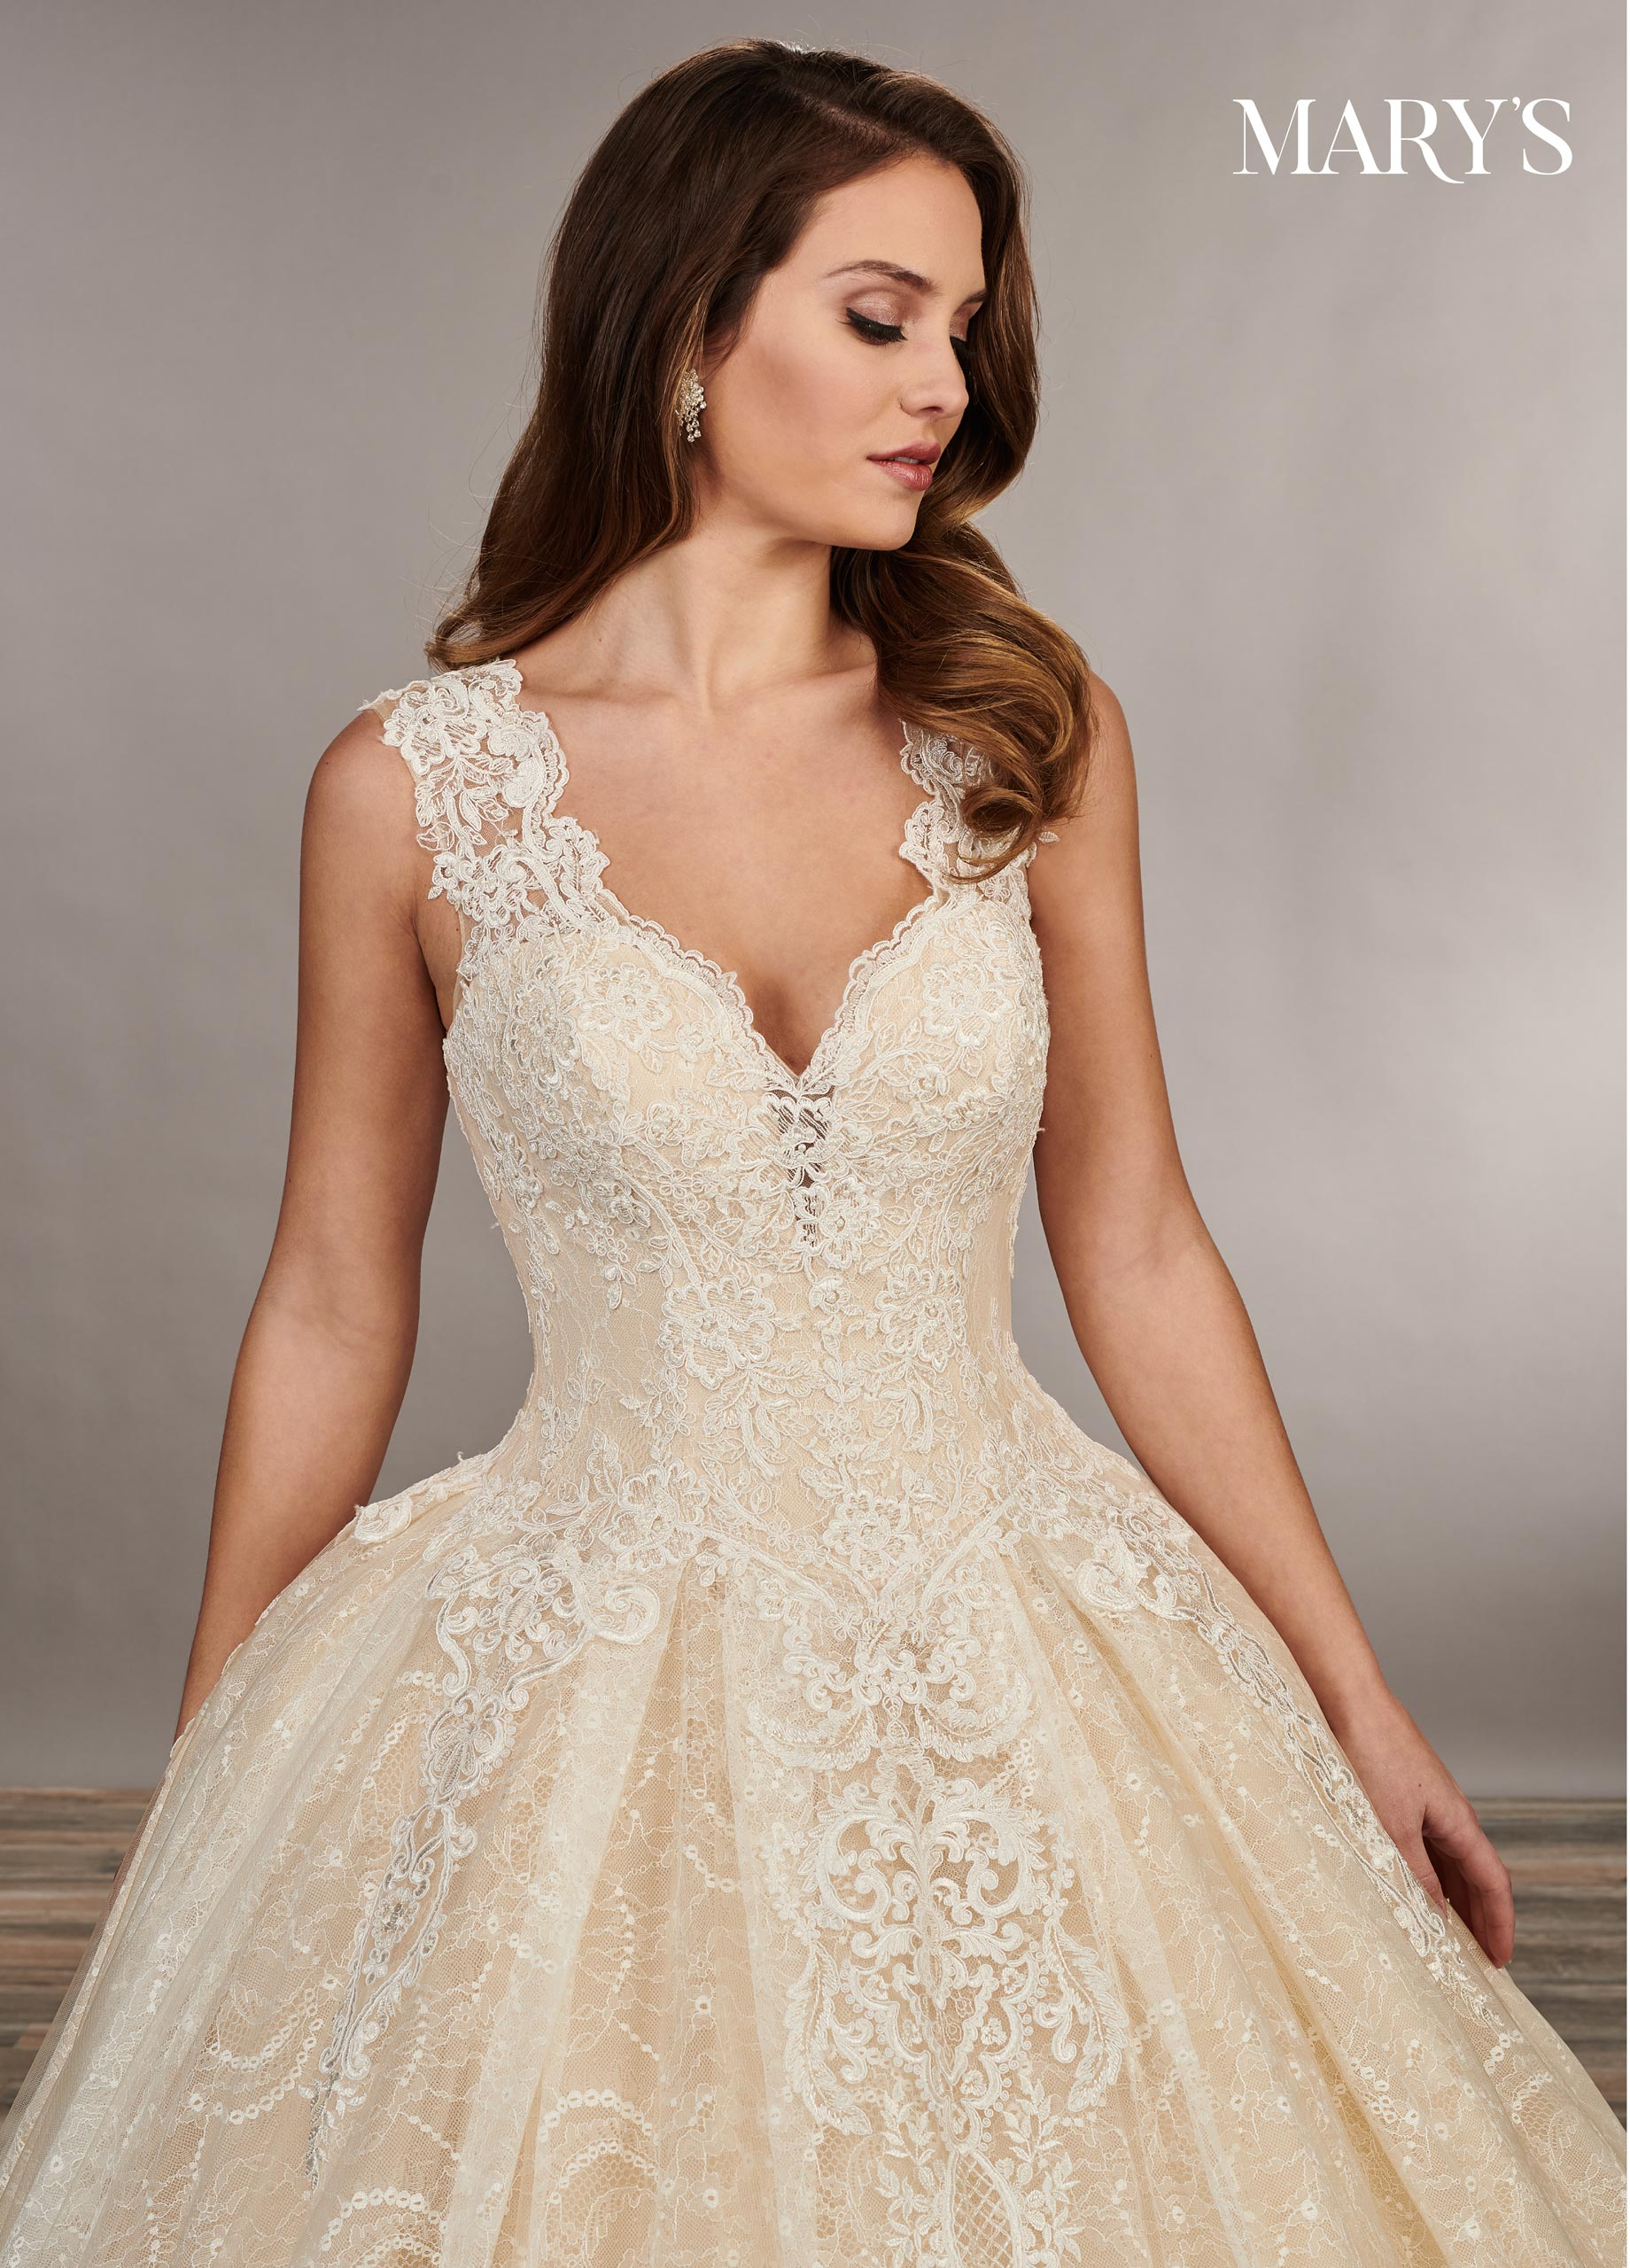 Bridal Wedding Dresses | Mary's | Style - MB3087